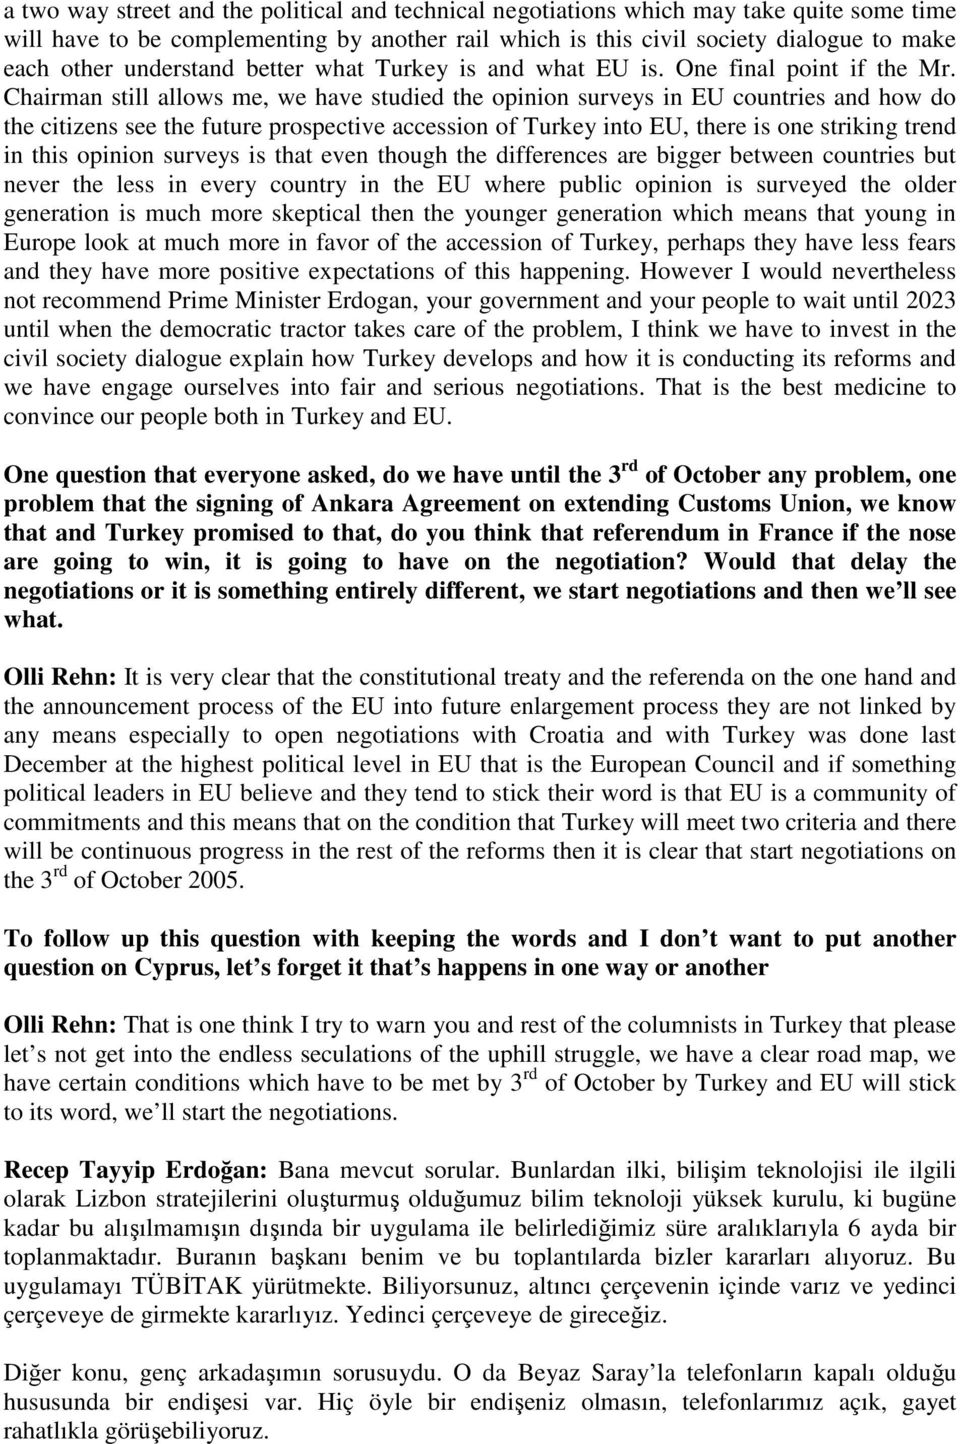 Chairman still allows me, we have studied the opinion surveys in EU countries and how do the citizens see the future prospective accession of Turkey into EU, there is one striking trend in this